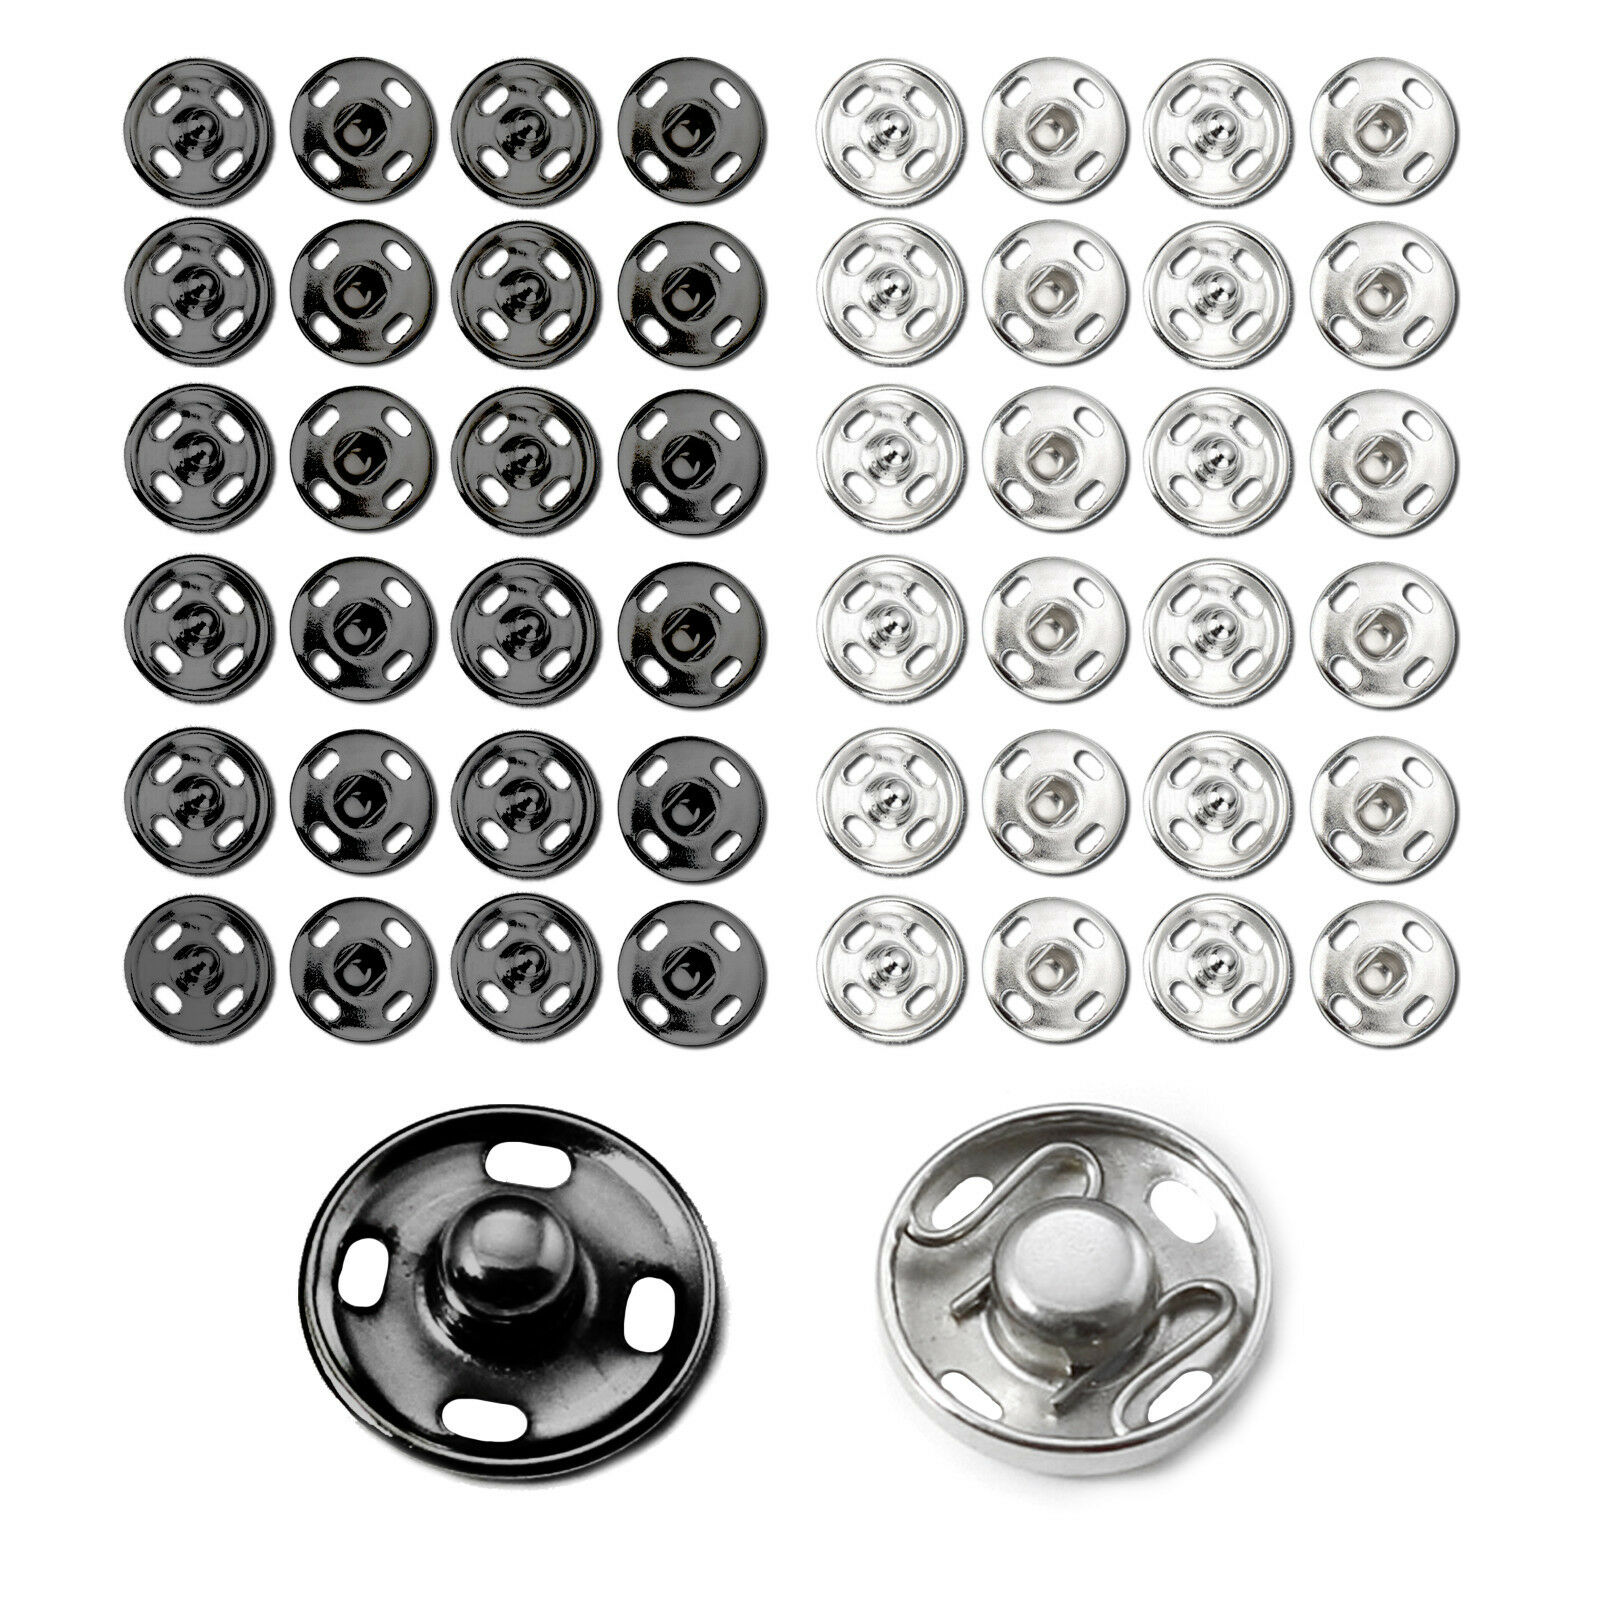 Invisible Snaps Fasteners Poppers Press Studs Sew On Fastener Metal Button